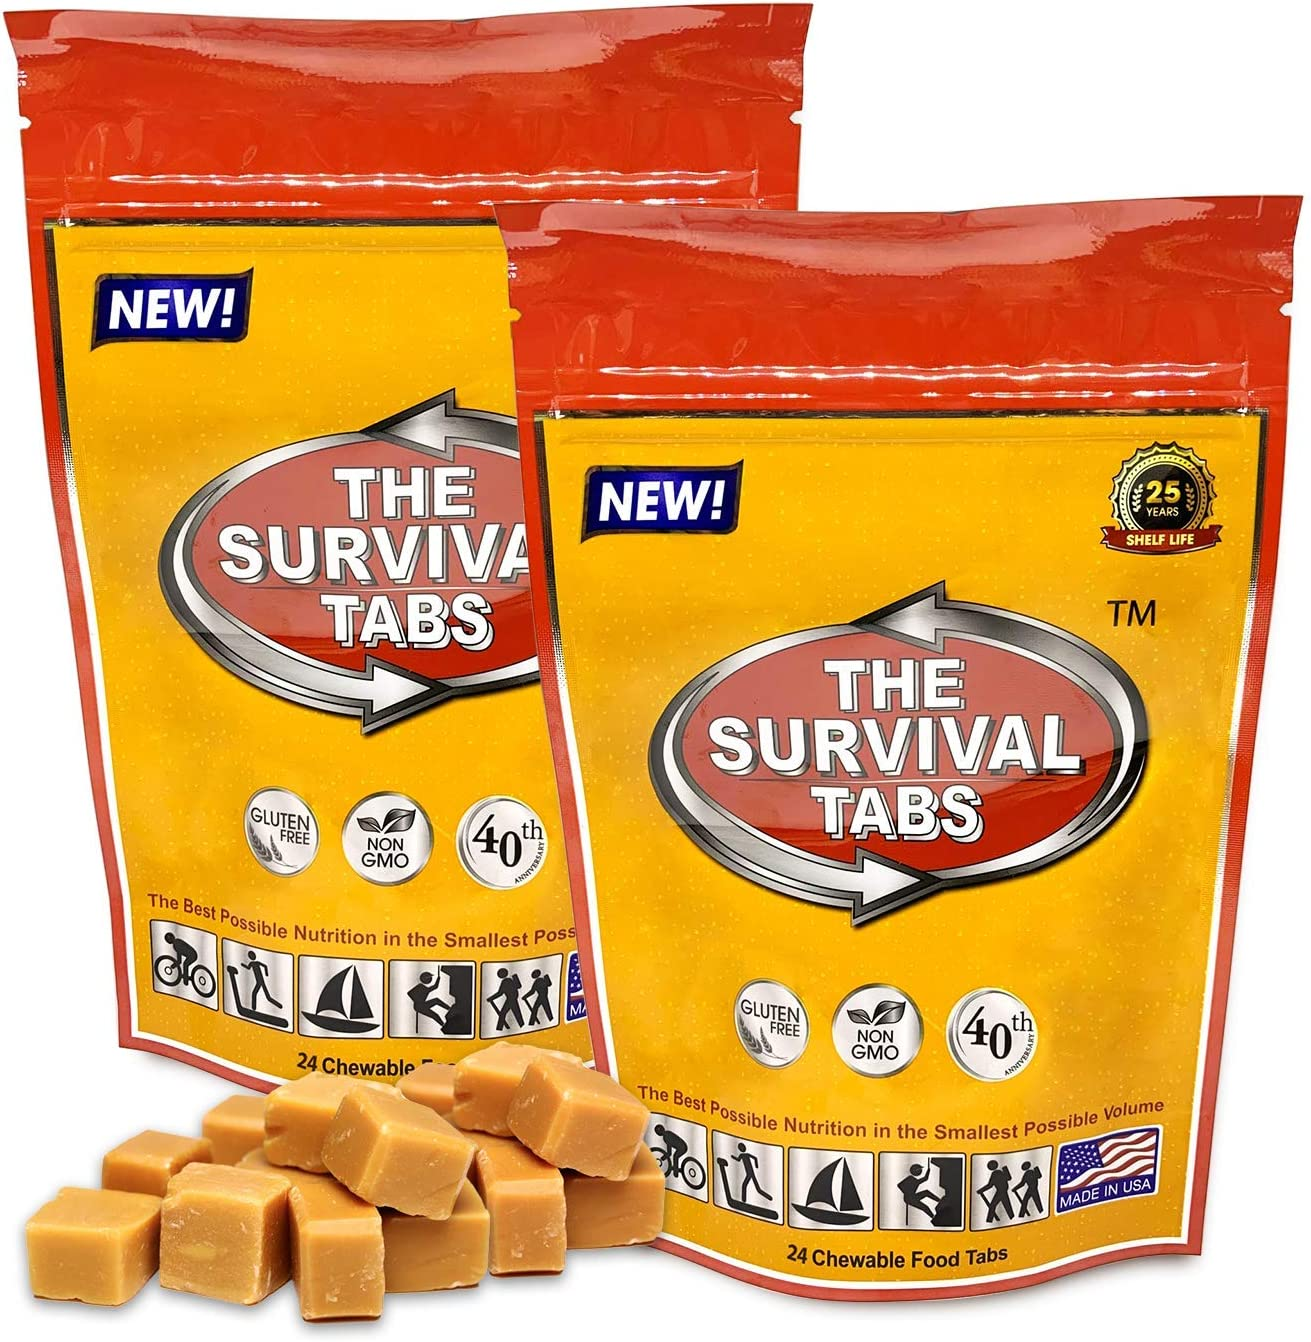 Premium emergency food 96 hours survival tablets none-GMO gluten-free 25 years shelf life (butterscotch/2 pouchs)